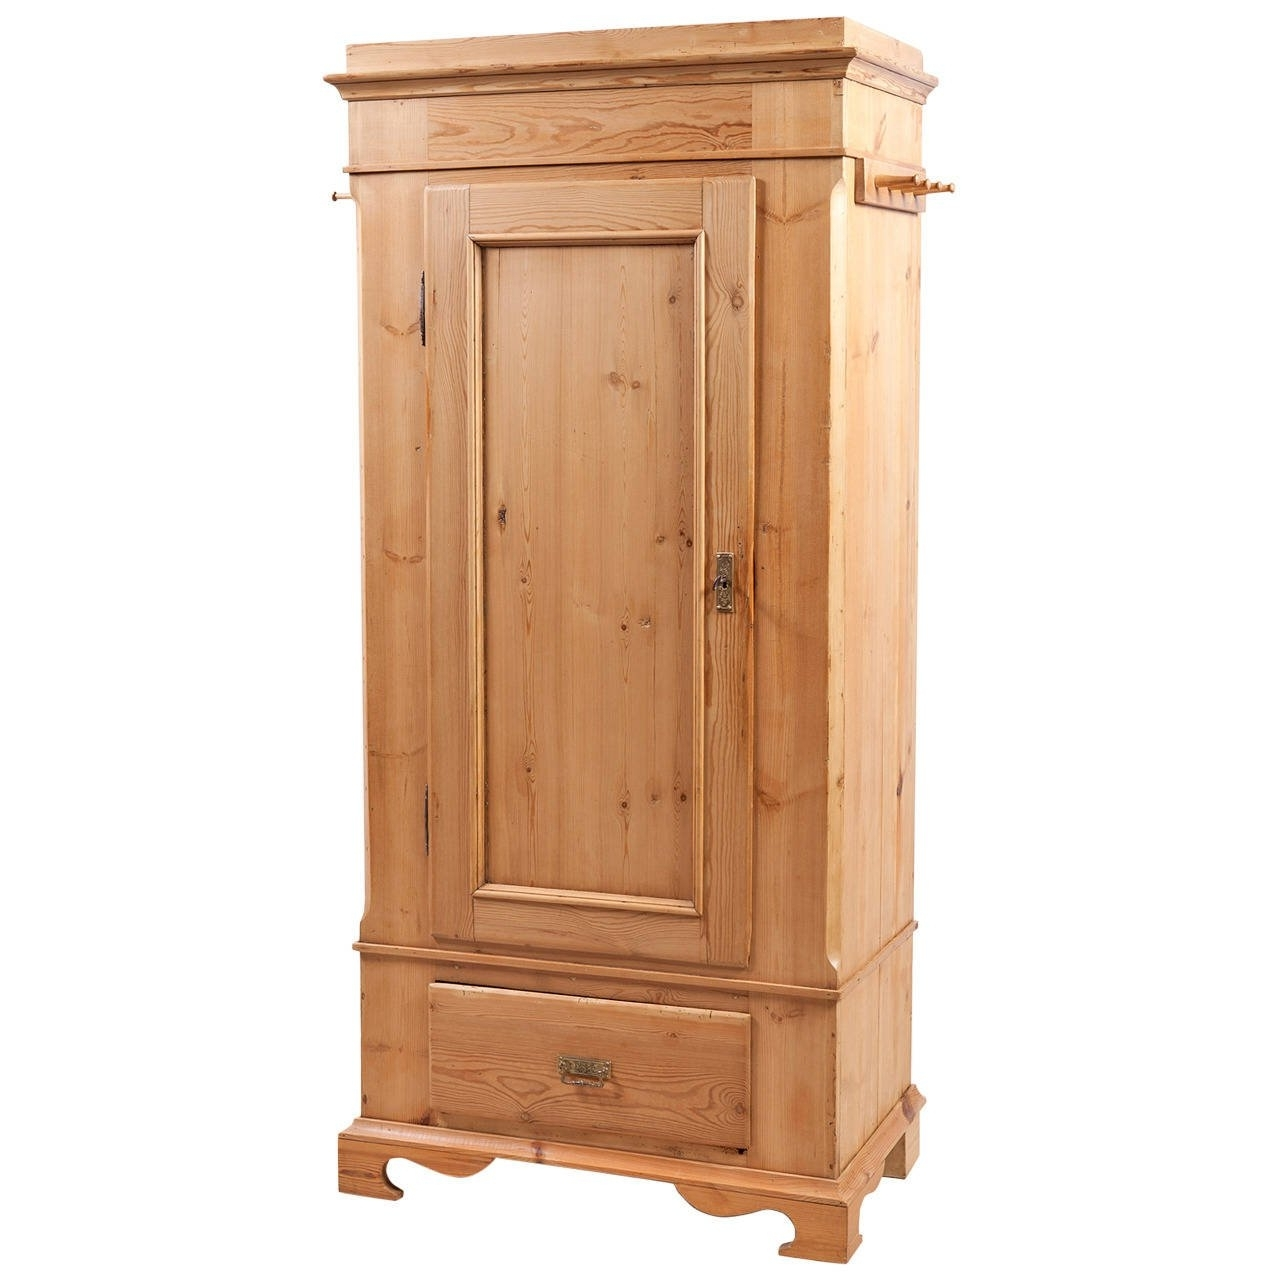 Widely Used Pine Single Wardrobes Within Single Door Danish Wardrobe Armoire In Pine, Circa 1845 At 1Stdibs (View 15 of 15)